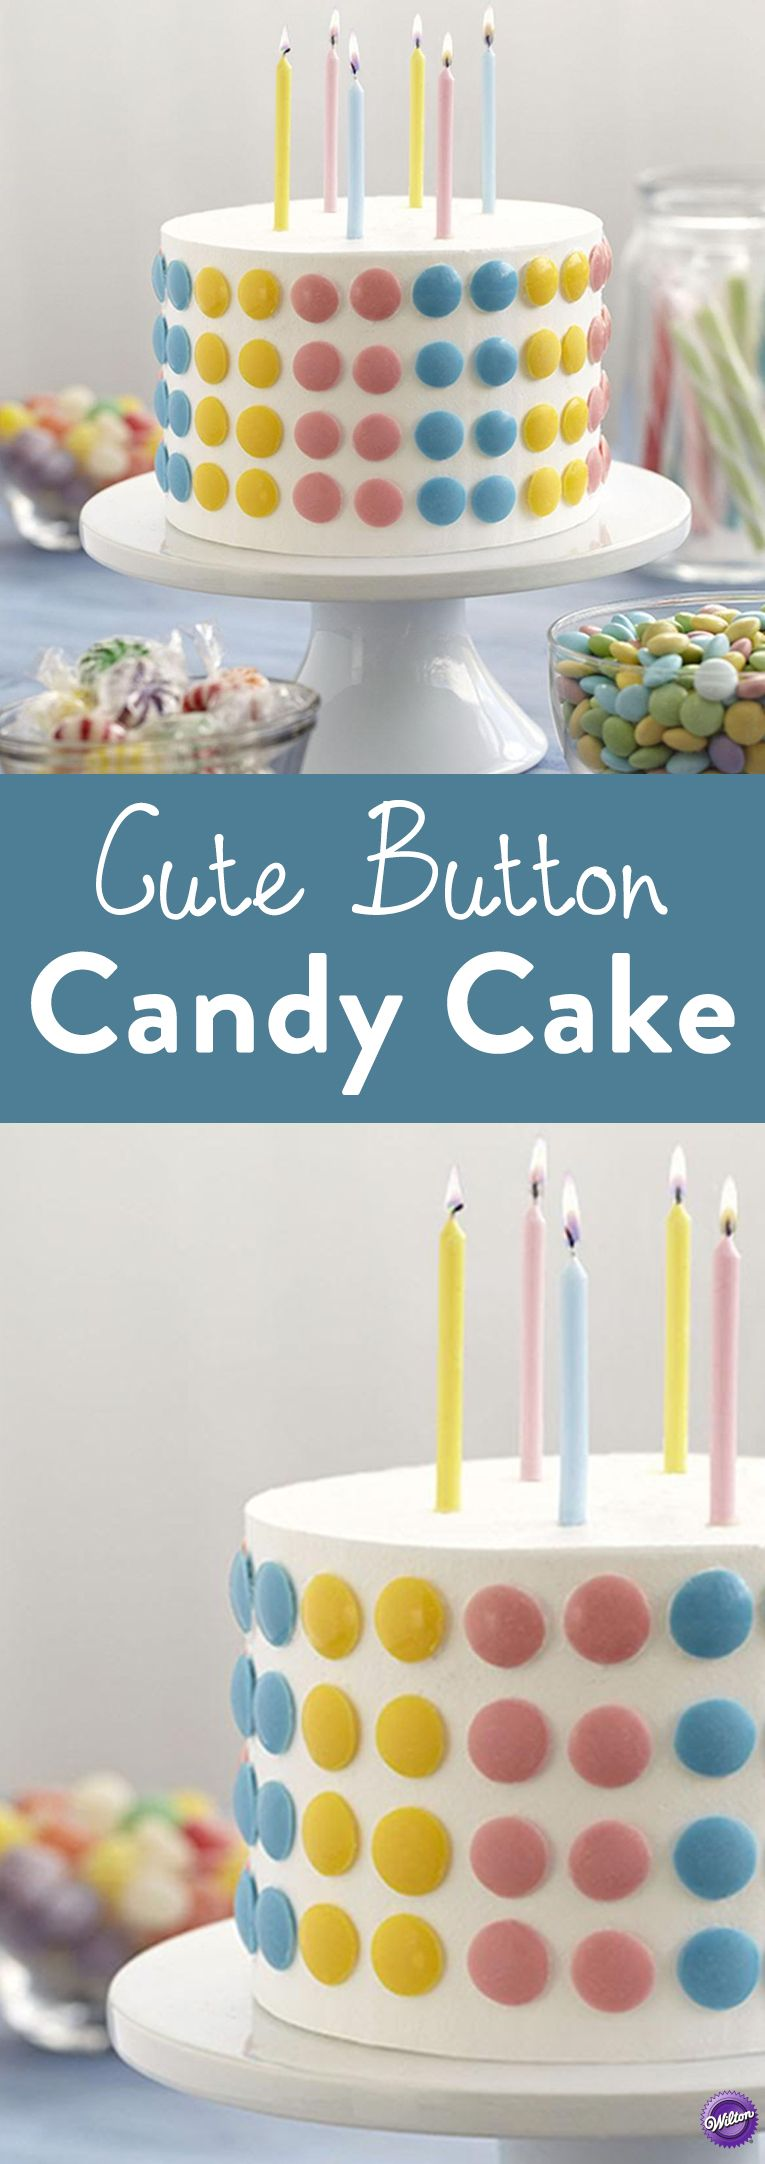 Cute As A Button Candy Cake Birthday Cakes Pinterest Candy